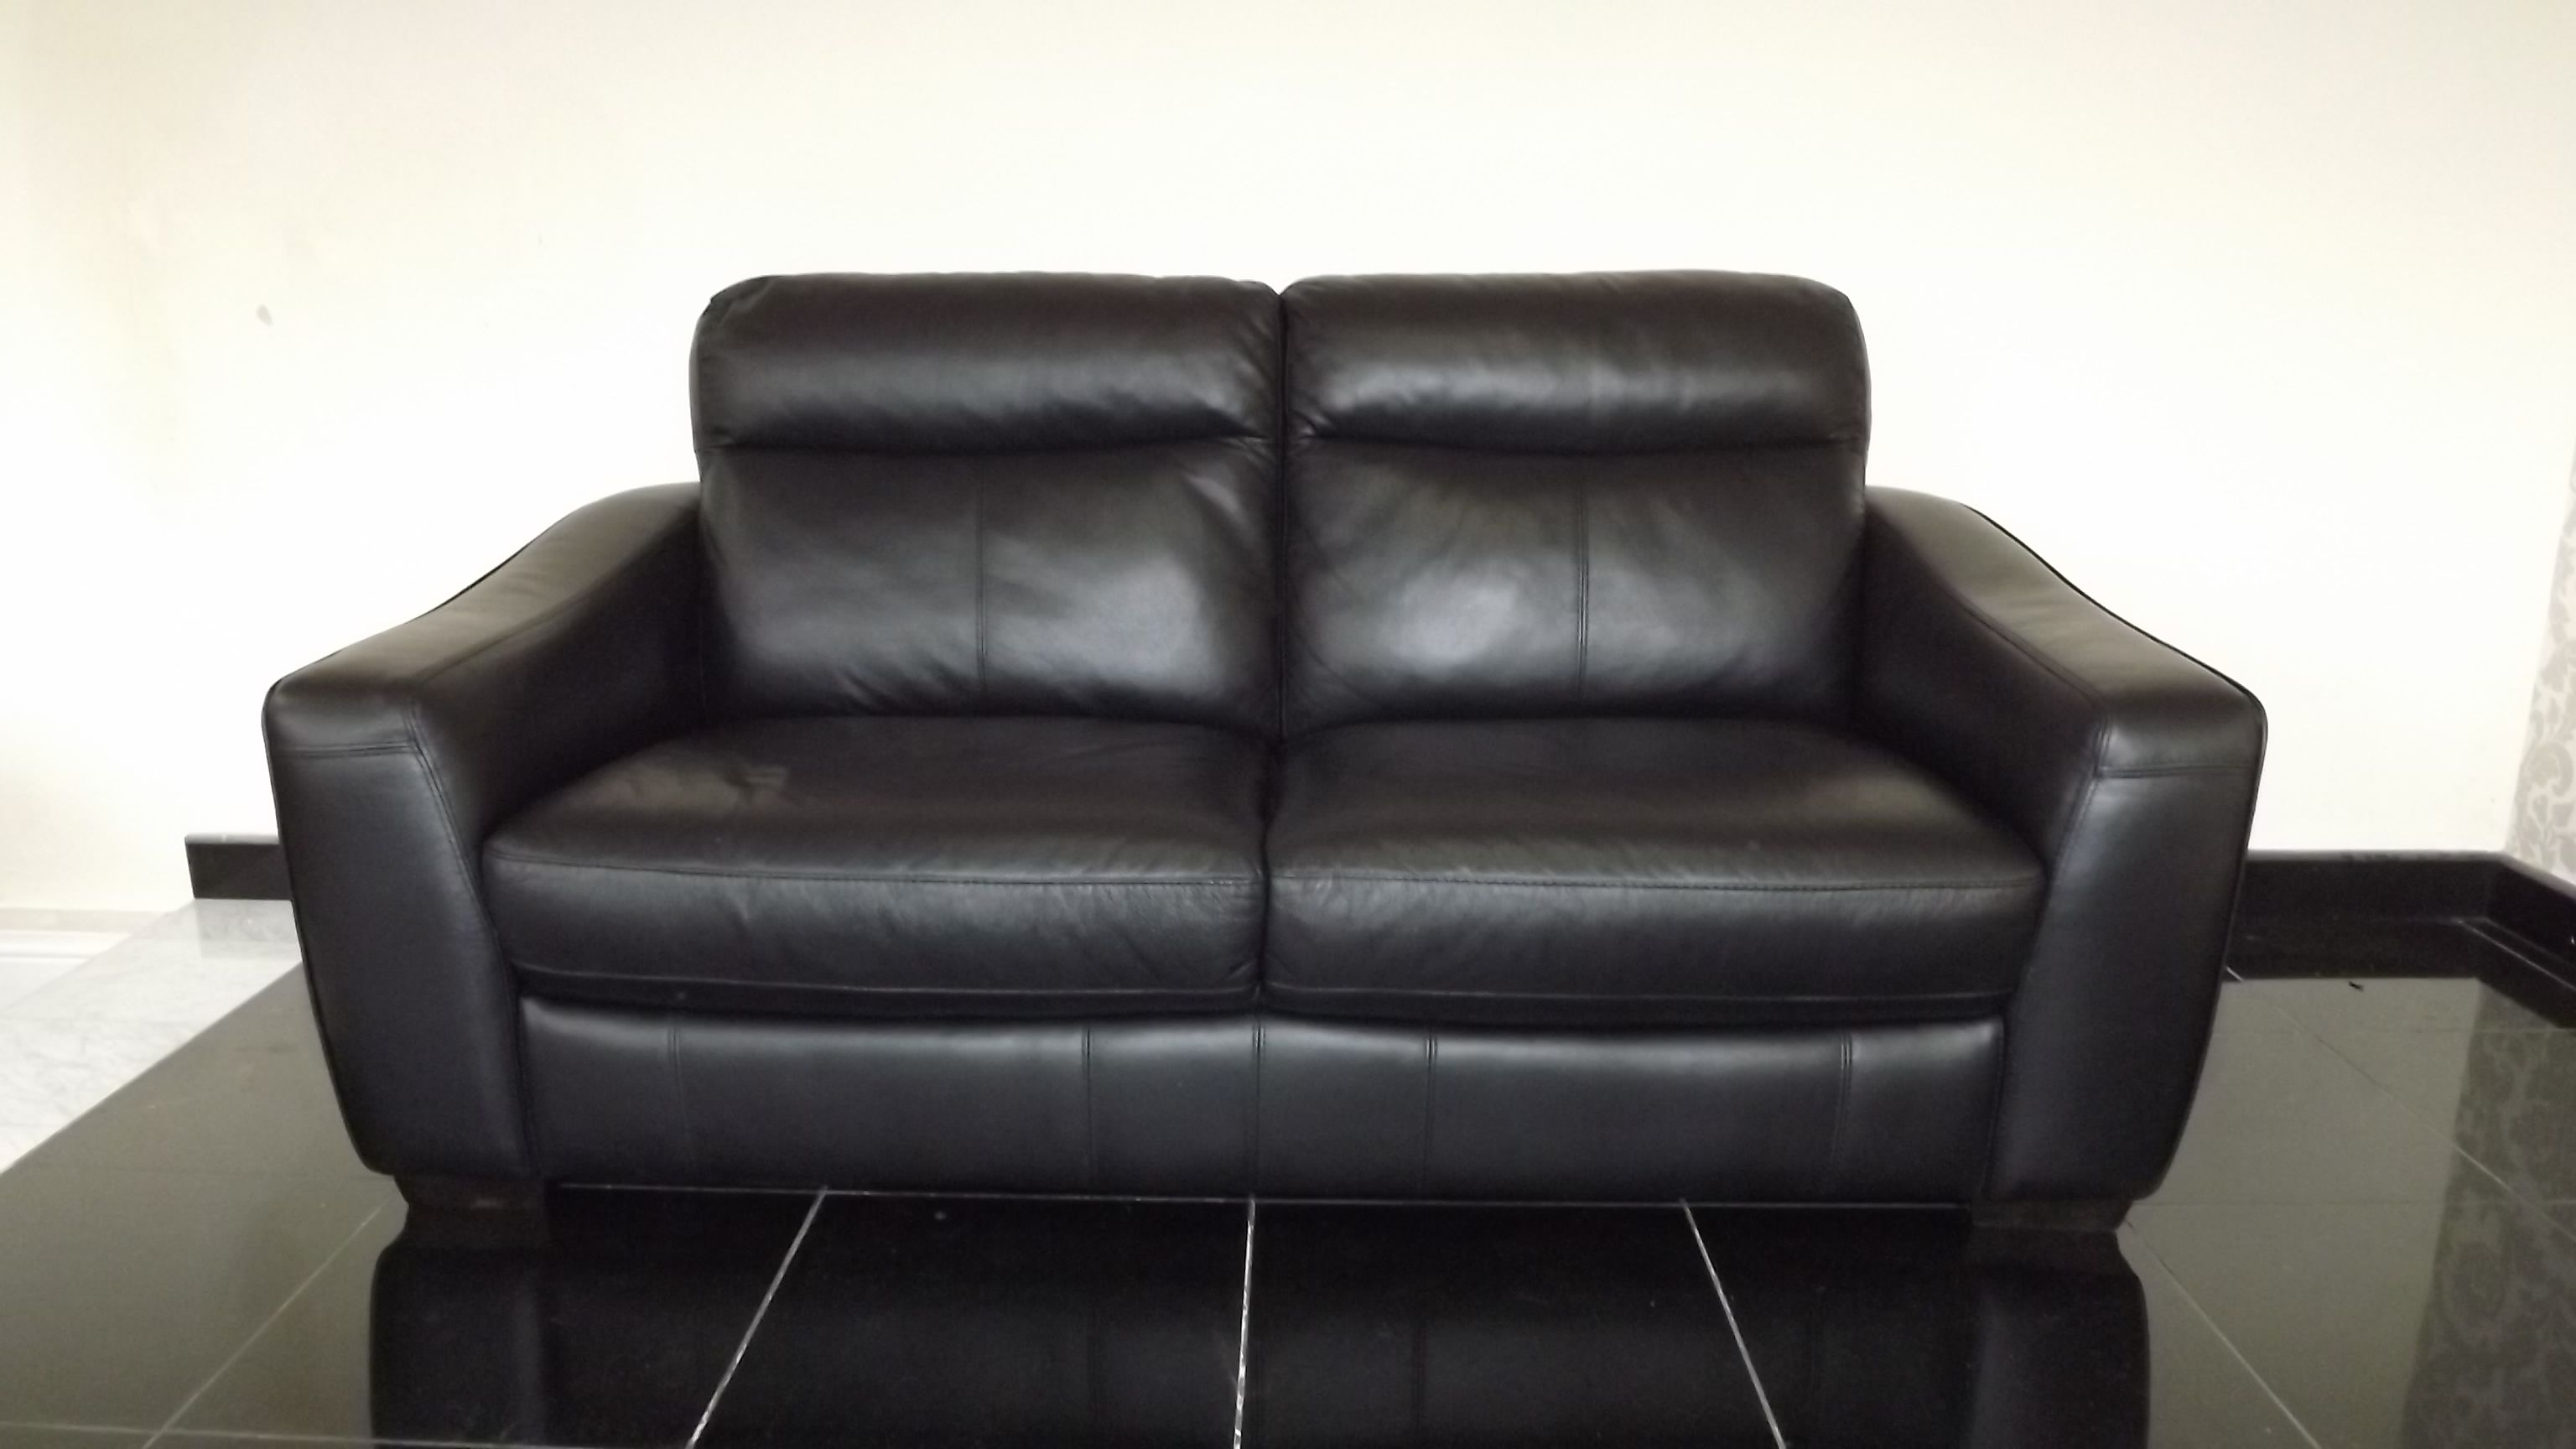 Designer Black Leather 3 Seater 2 Seater Electric Sofa 244 999 Sofa Sofa Design Design